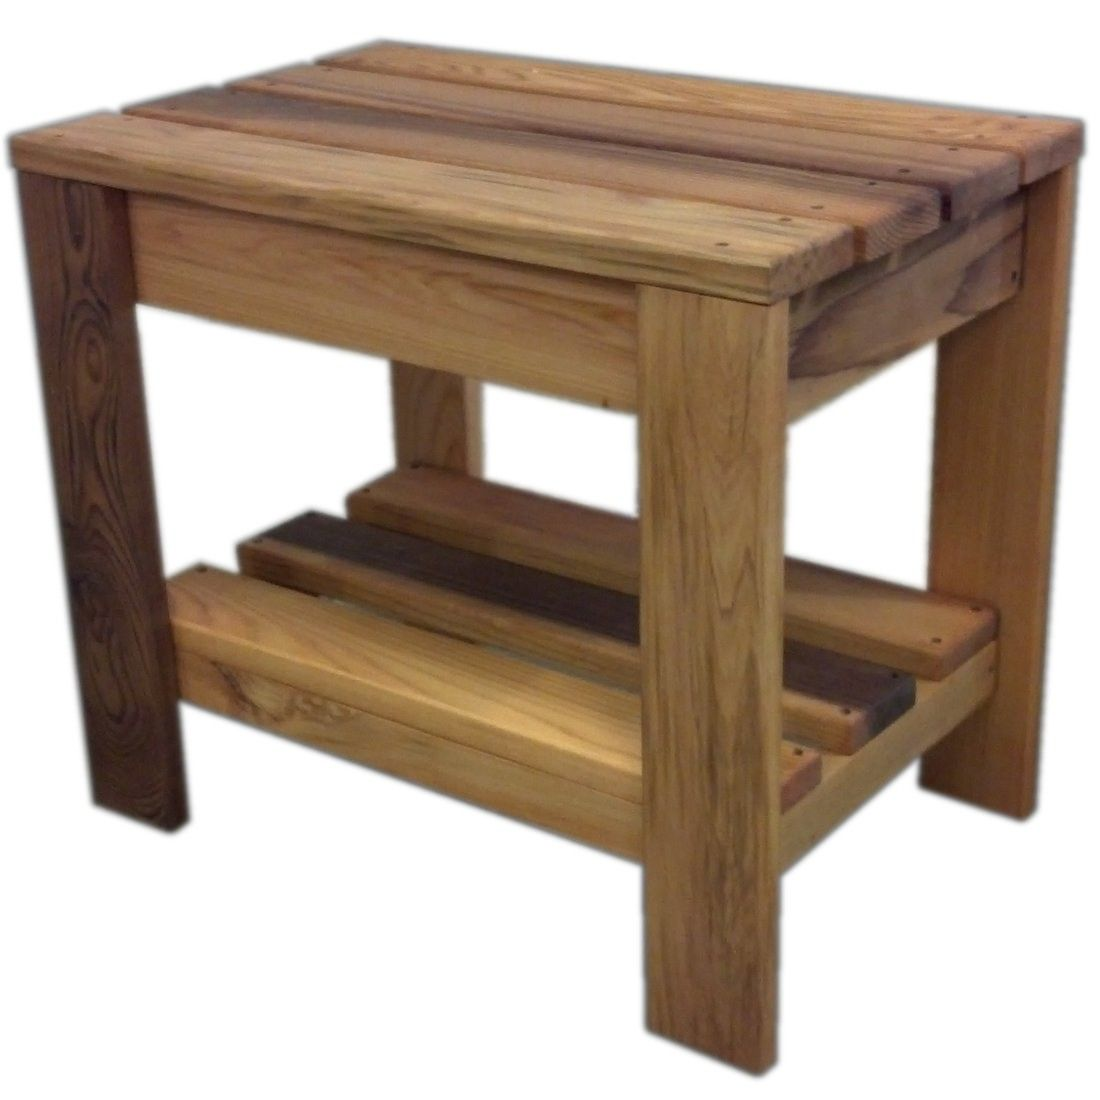 Oregon Patio Works Side Table.